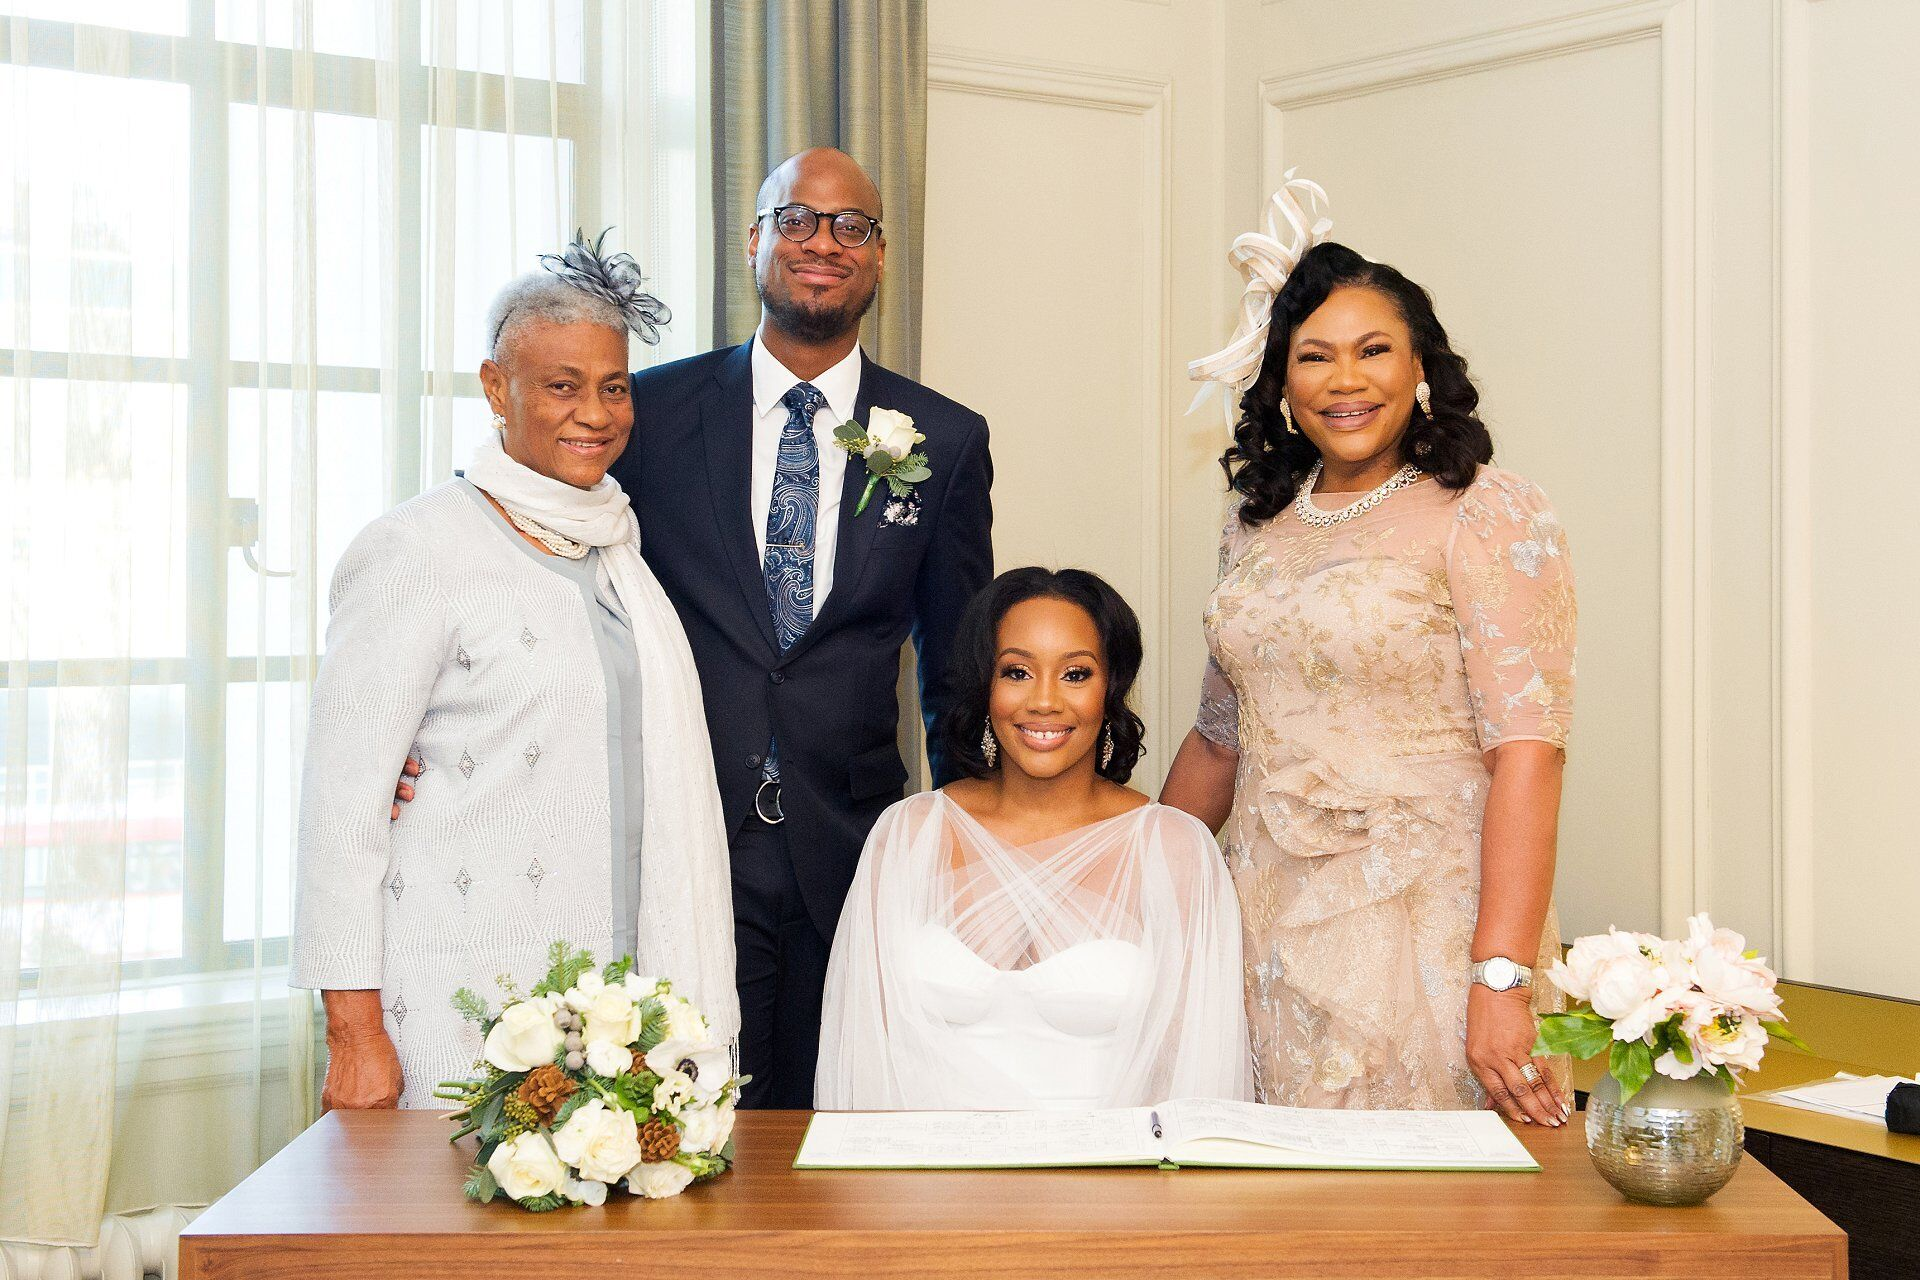 bride and groom plus their mothers - the witnesses - pose for a formal photograph